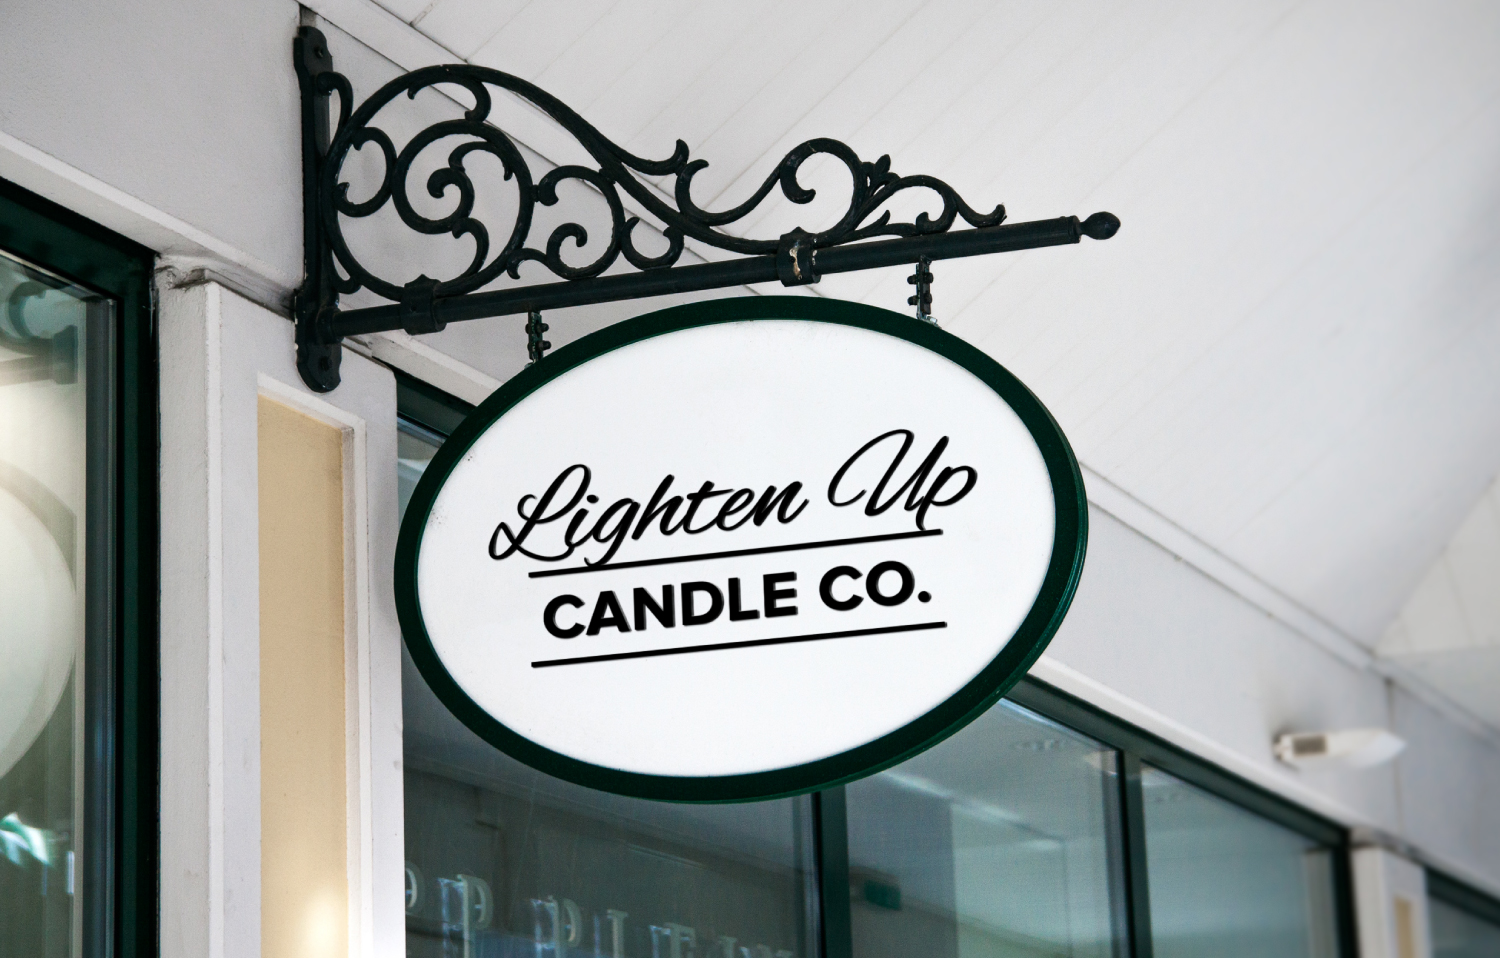 Lighten up candle co - get to know the co_v2-01